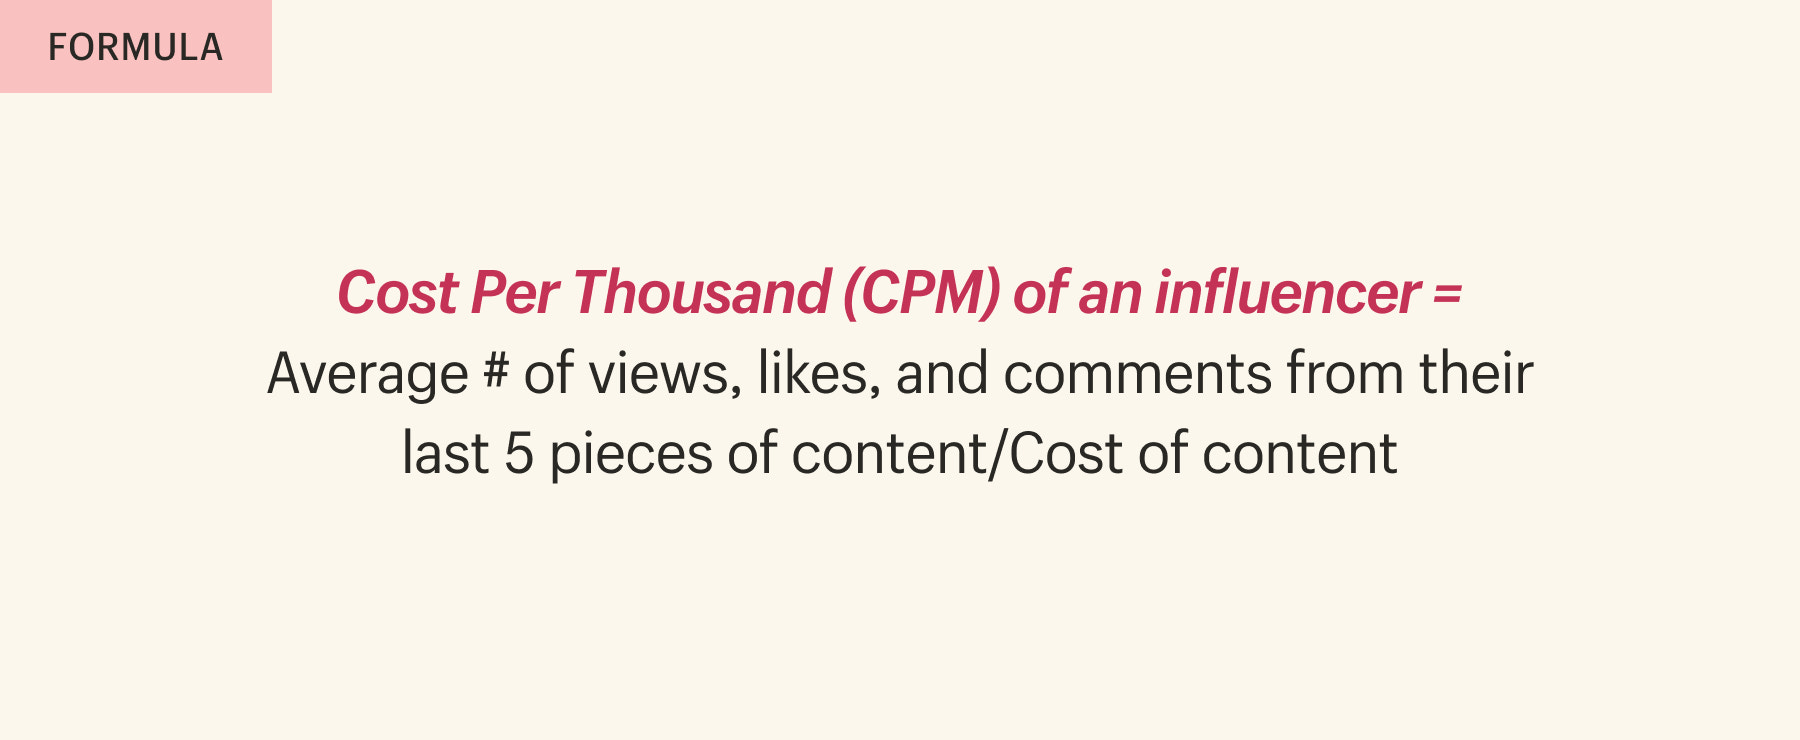 Cost Per Thousand (CPM) of an influencer = Average # of views, likes, and comments from their last 5 pieces of content/Cost of content